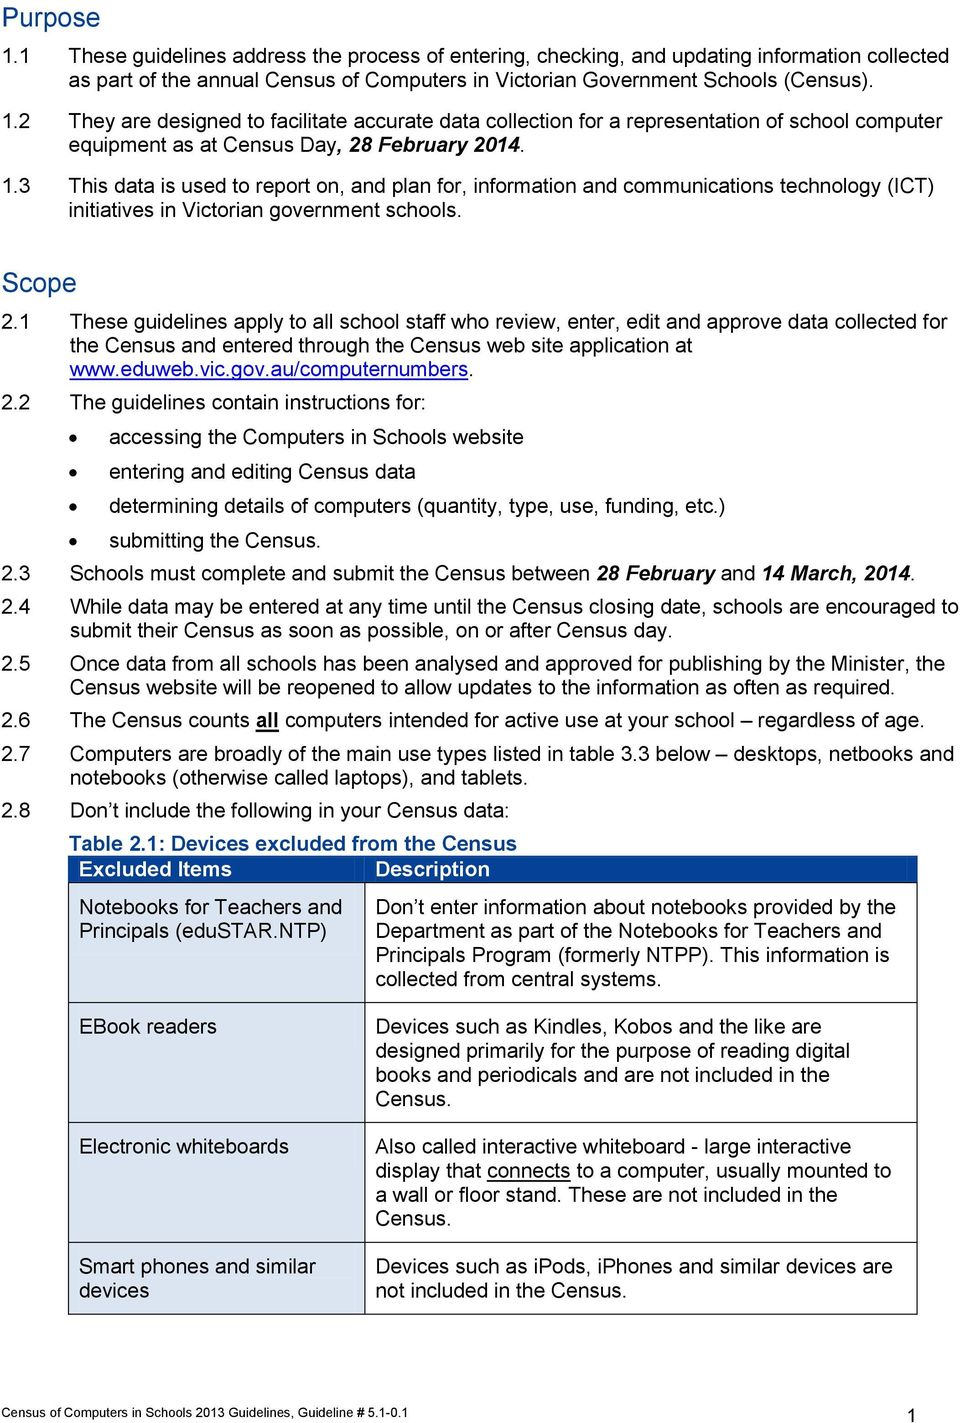 1 These guidelines apply to all school staff who review, enter, edit and approve data collected for Census and entered through Census web site application at www.eduweb.vic.gov.au/computernumbers. 2.